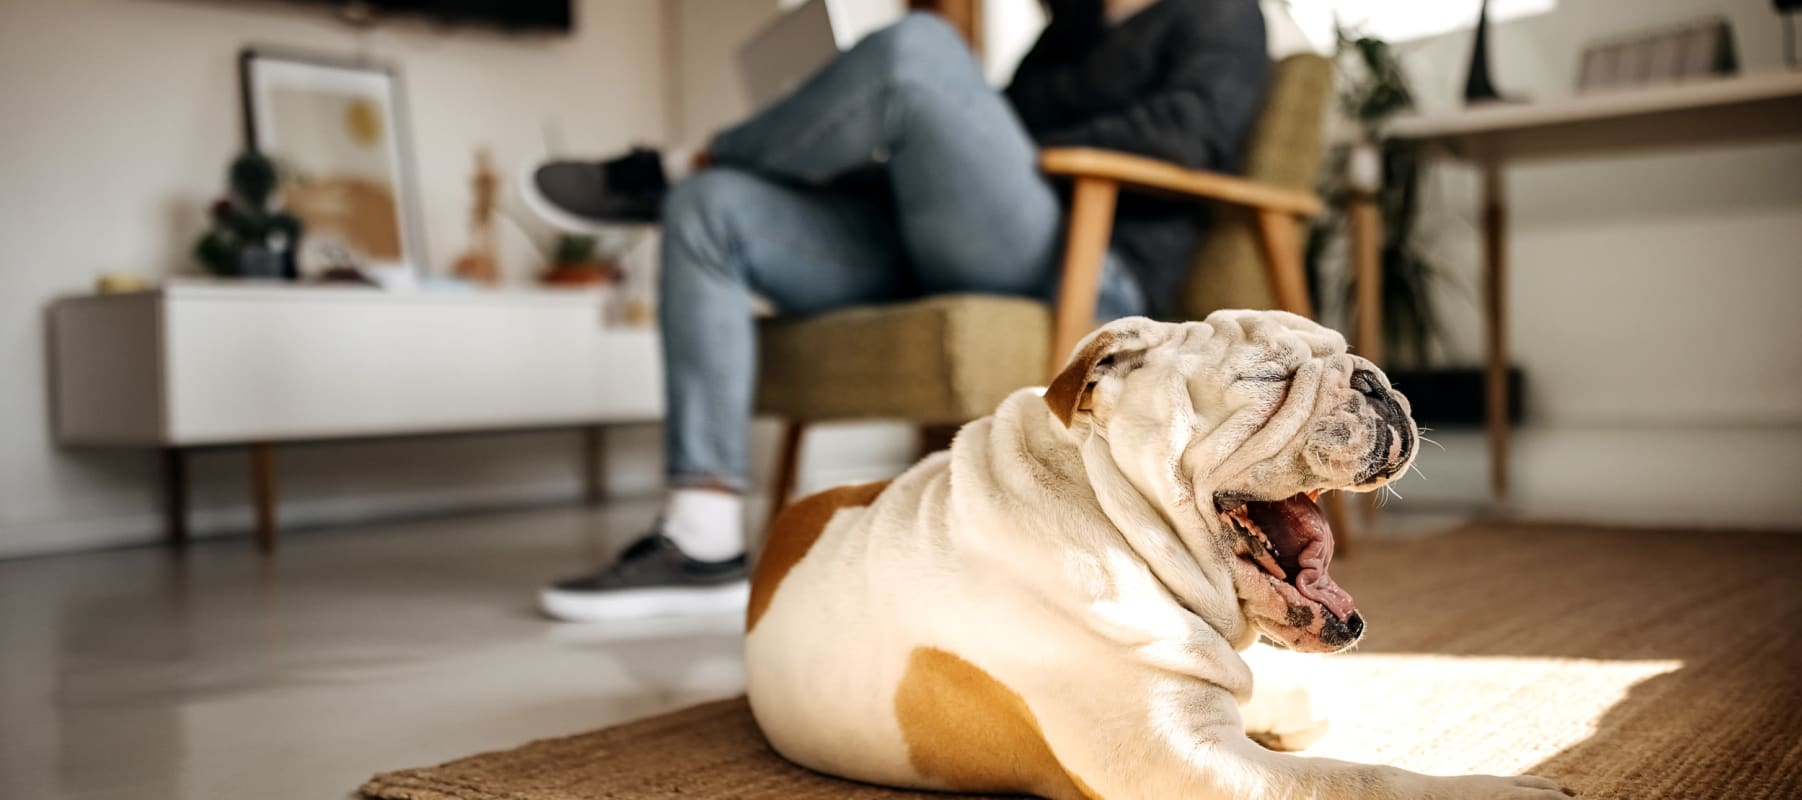 Bulldog yawning and relaxing on the floor of her new home at 17th Street Lofts in Atlanta, Georgia